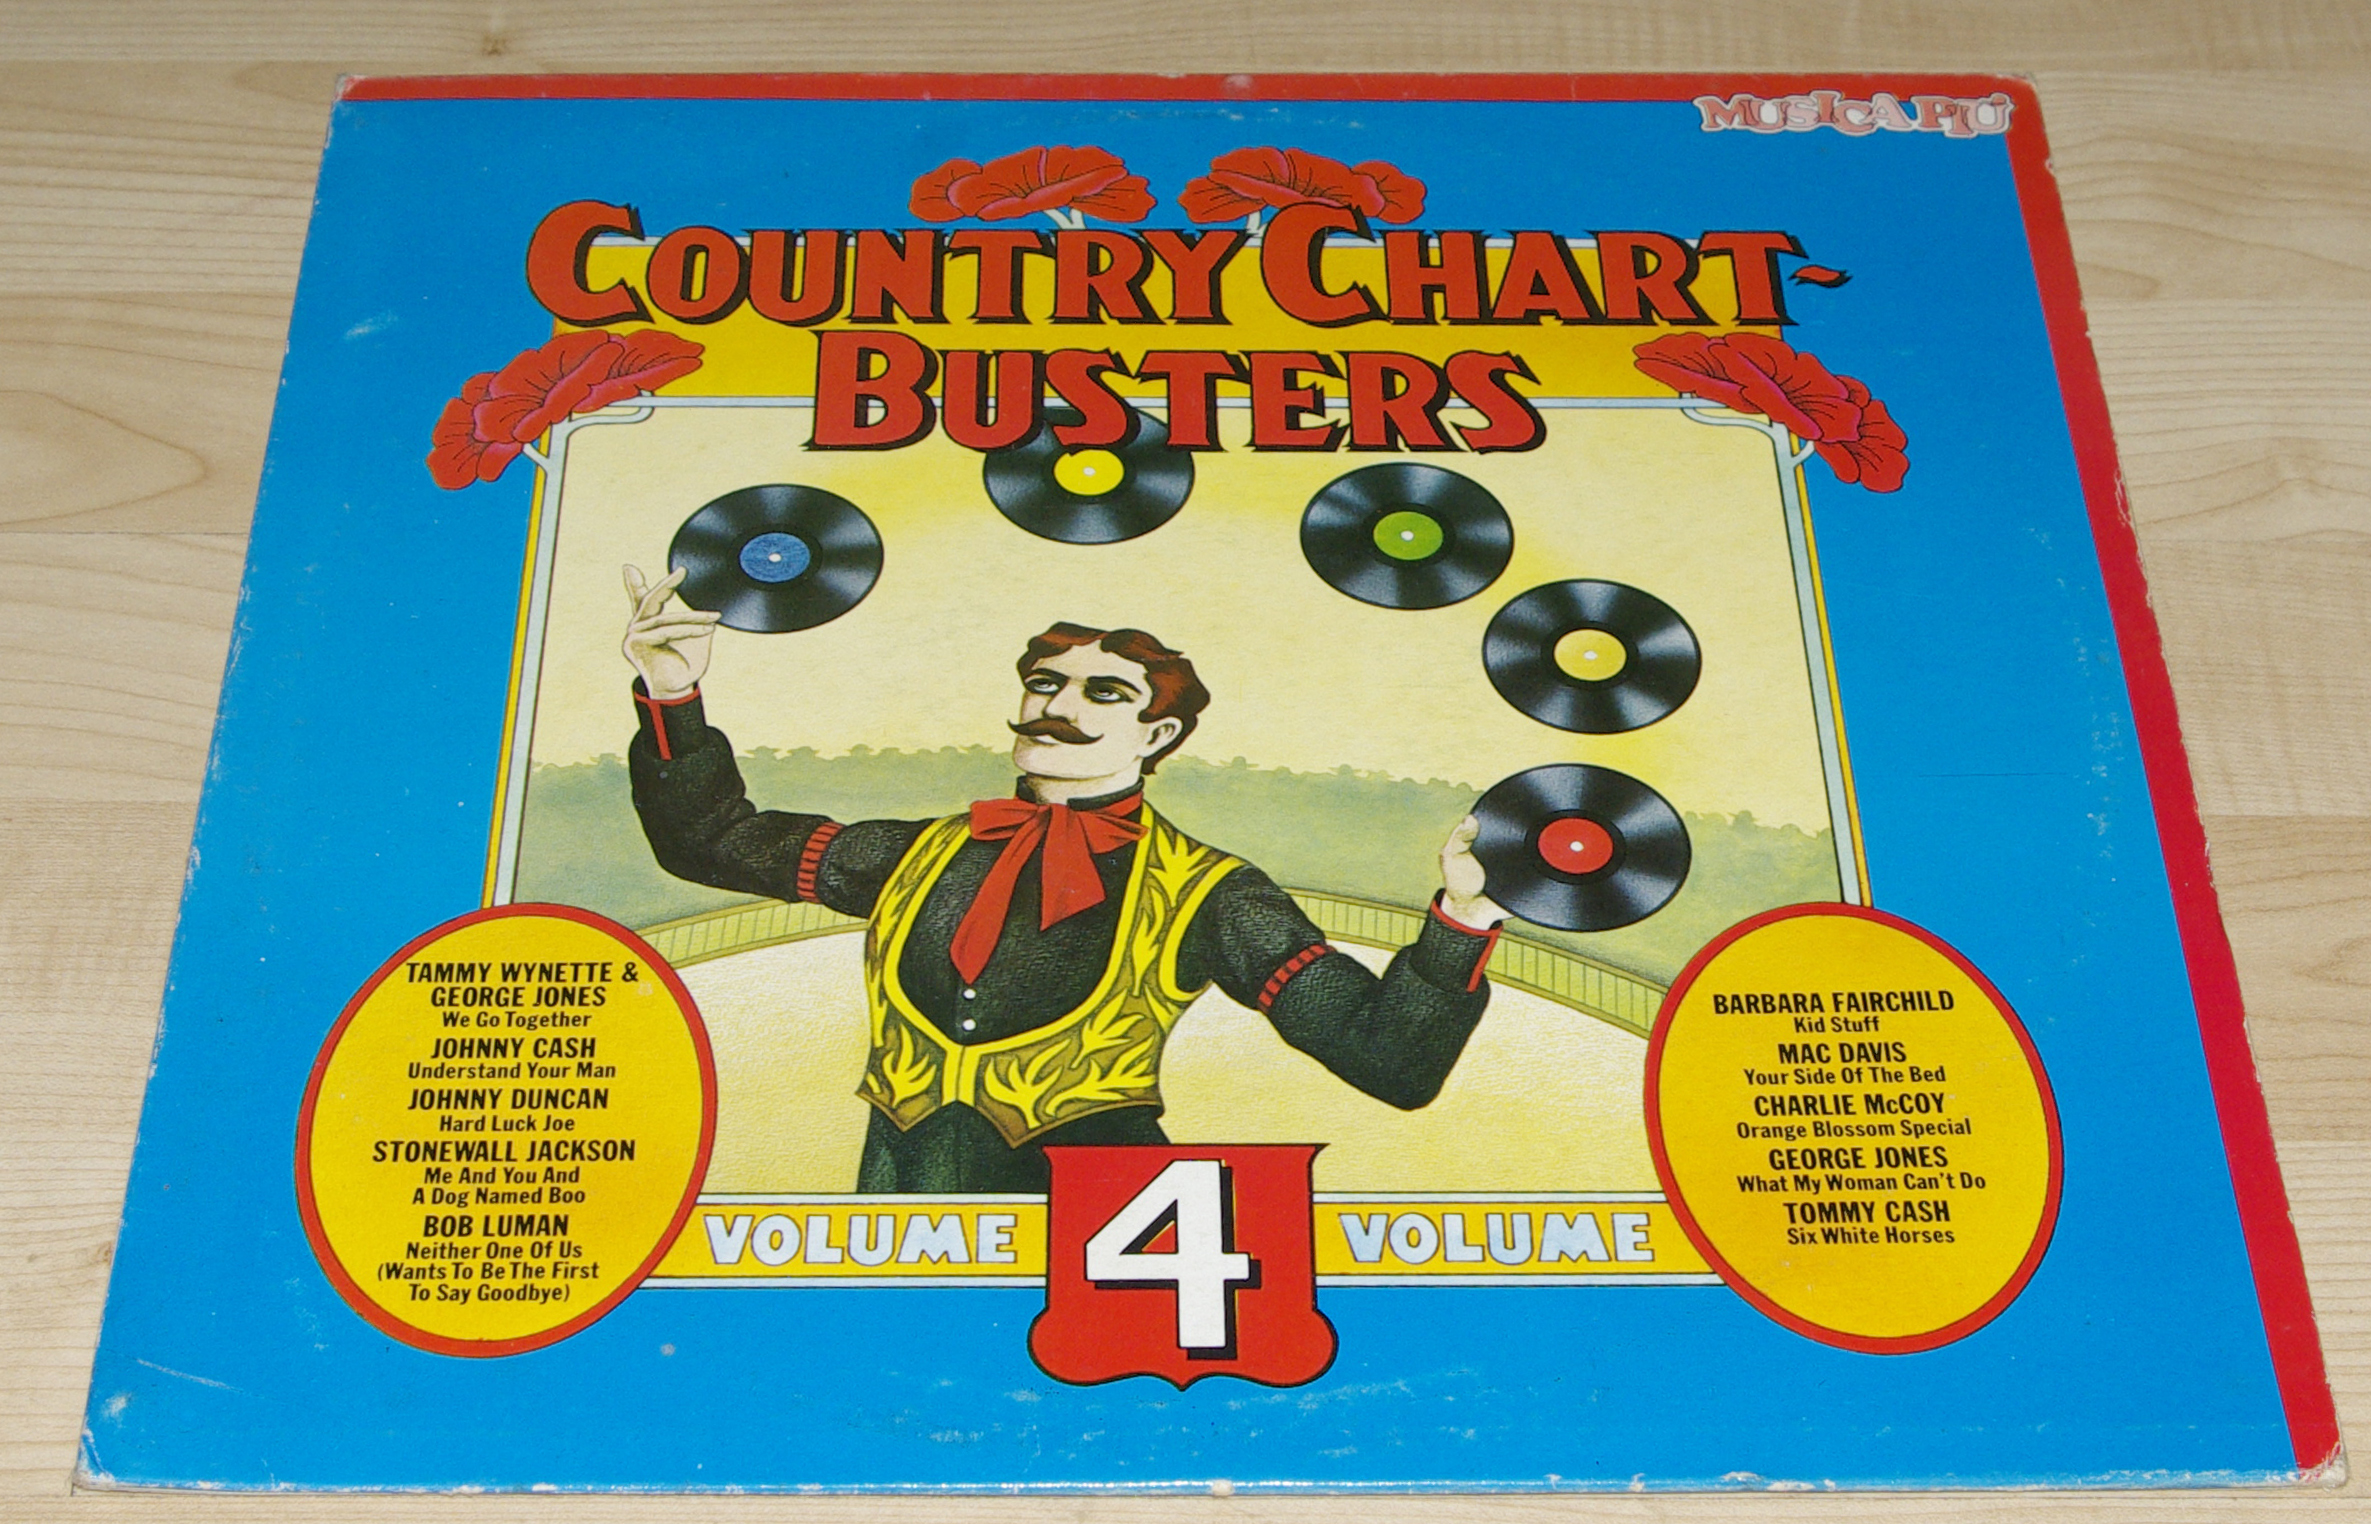 COUNTRY CHART BUSTERS VOLUME 4